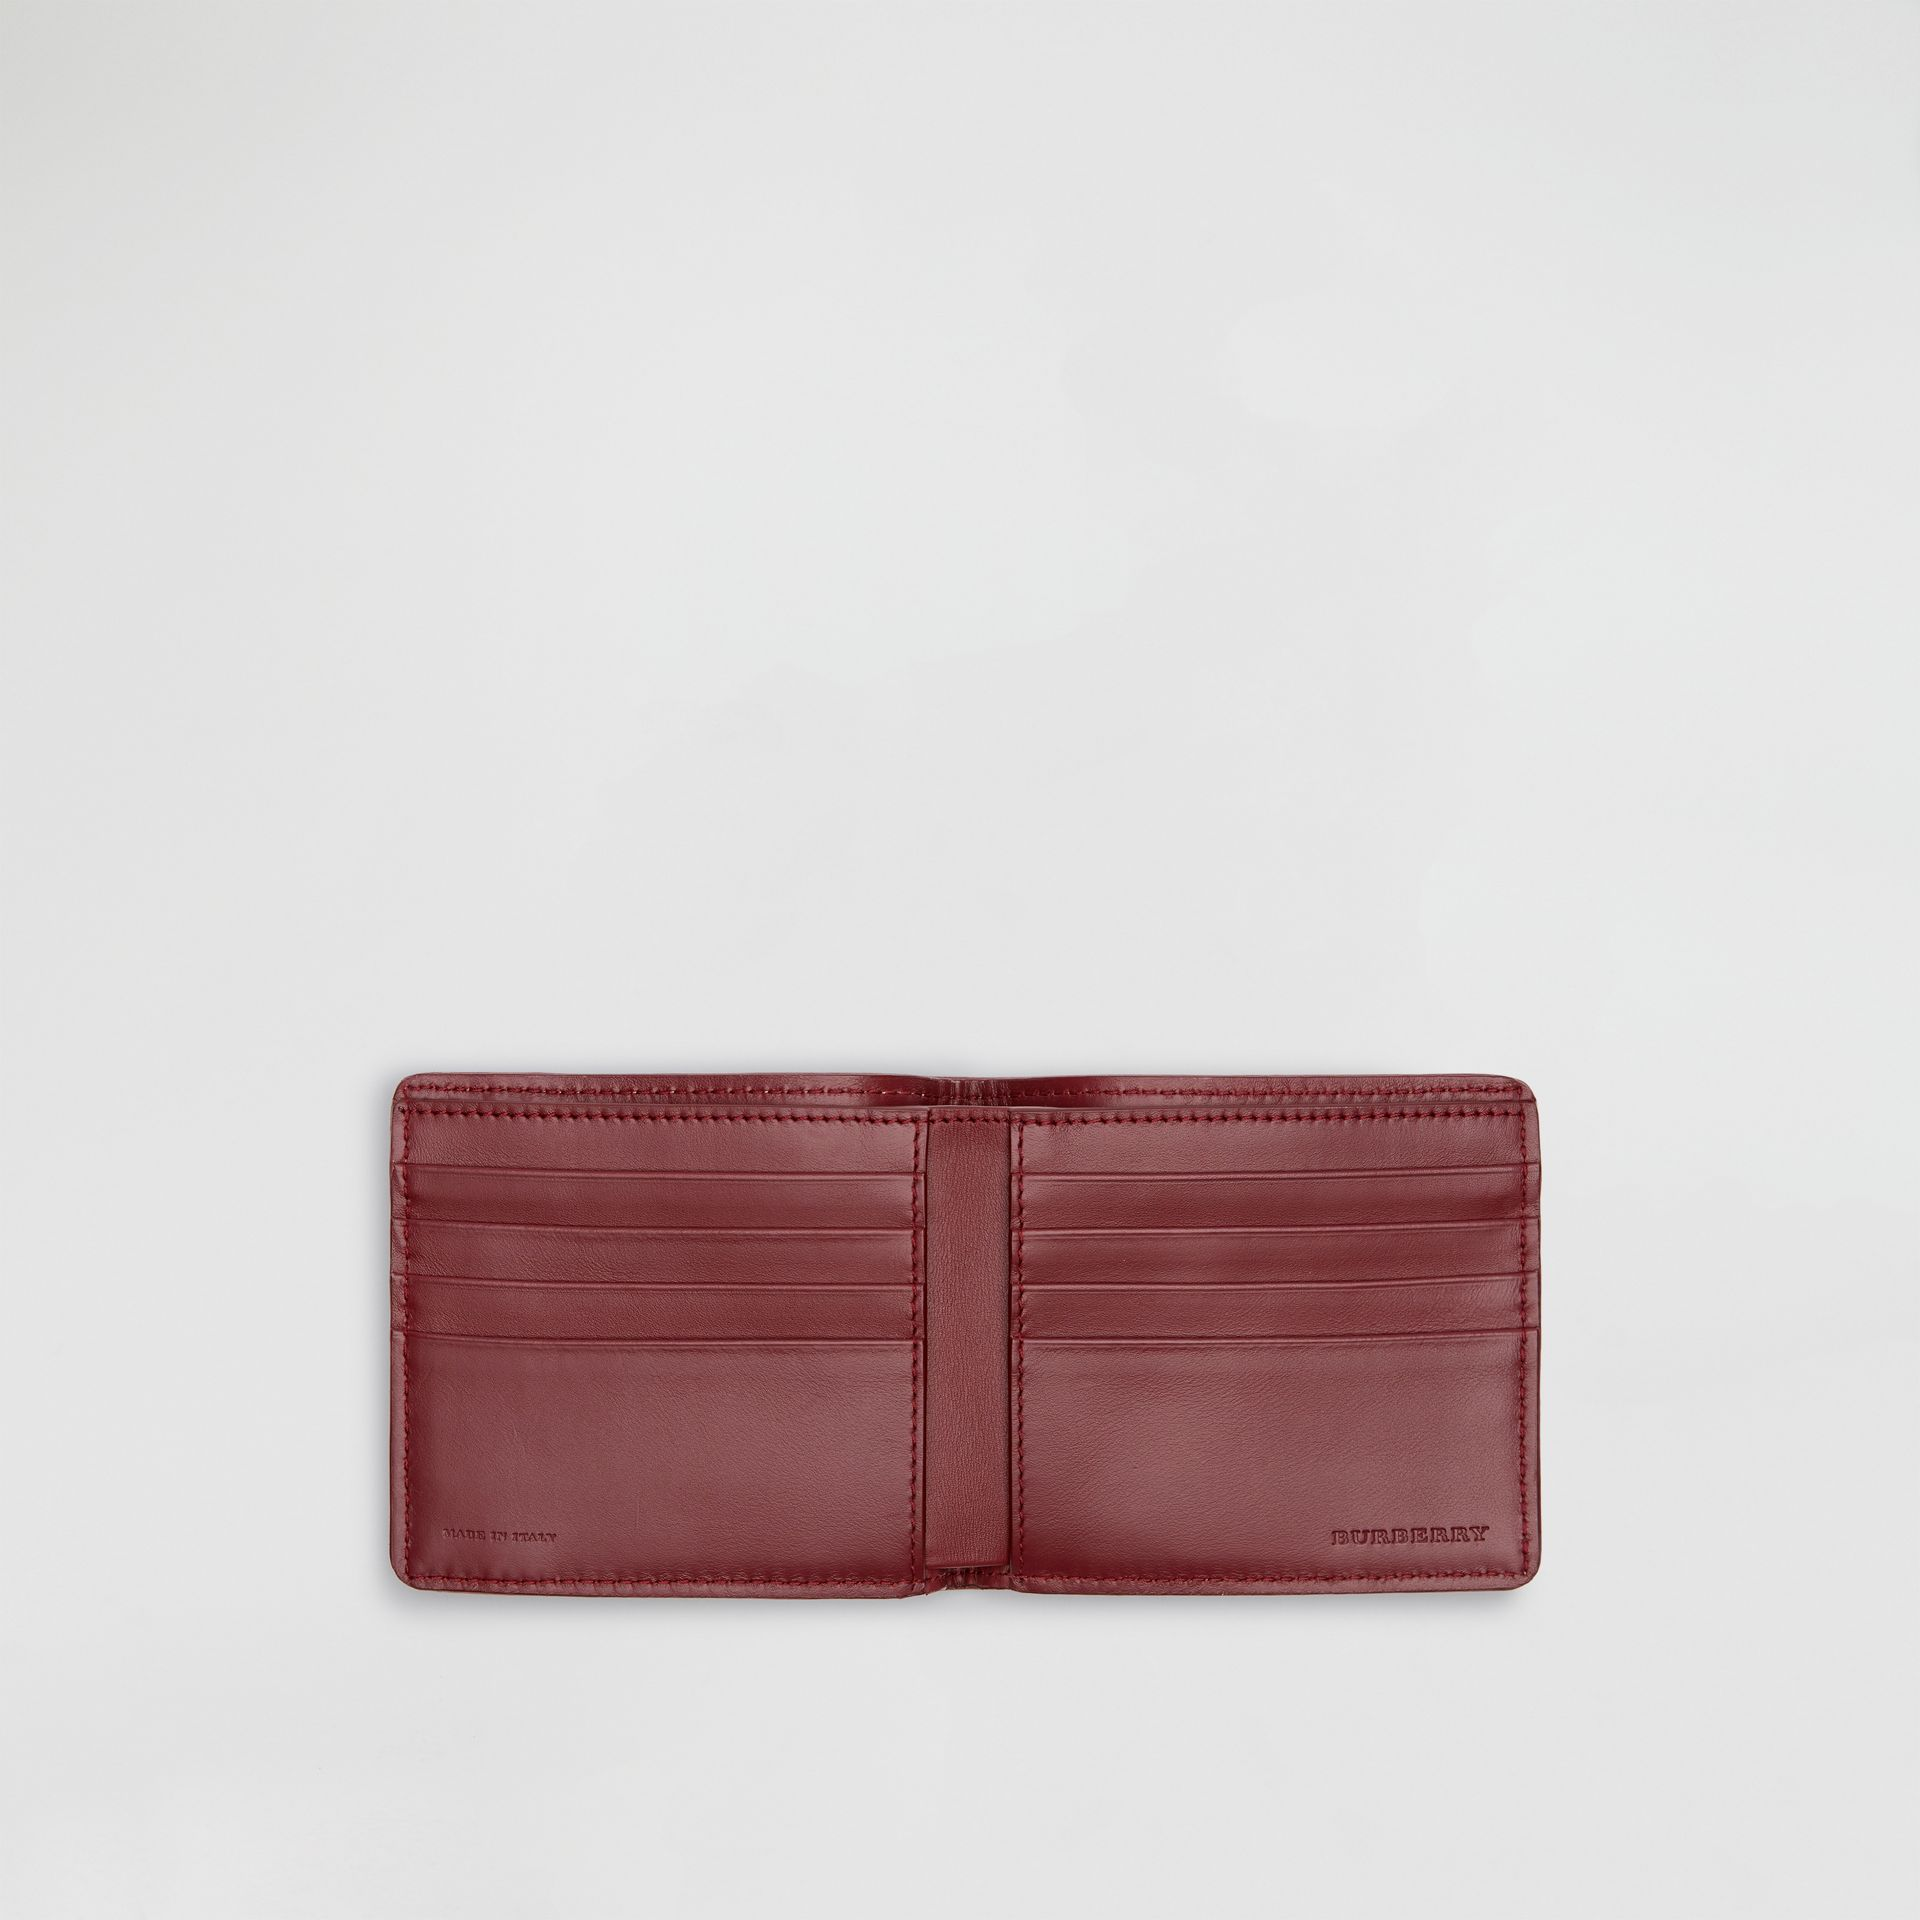 1983 Check and Leather International Bifold Wallet in Antique Red - Men | Burberry Singapore - gallery image 3